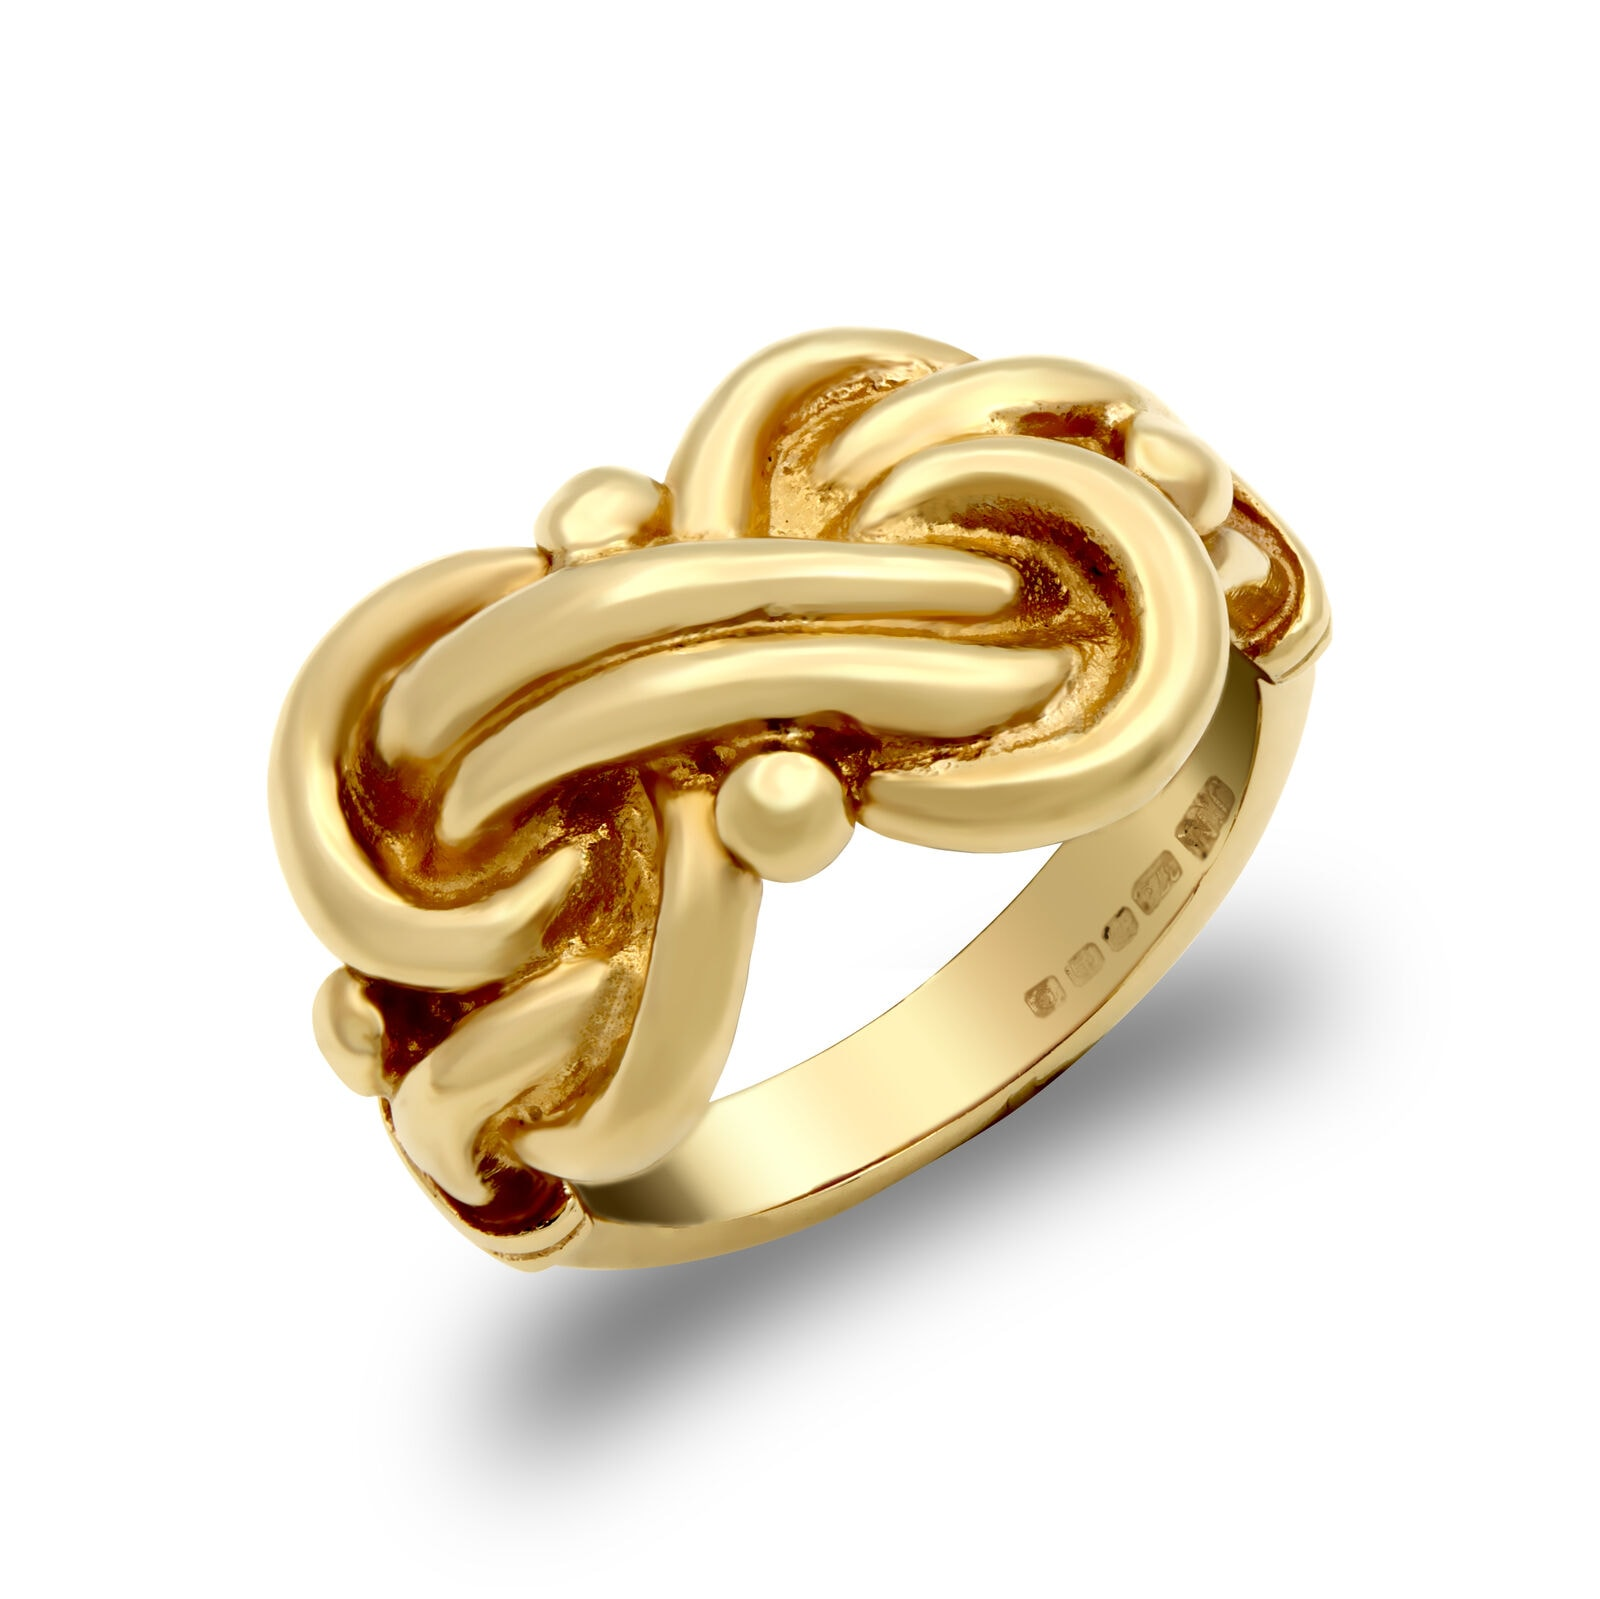 Solid 9ct yellow gold hand finished light weight double knot ring.